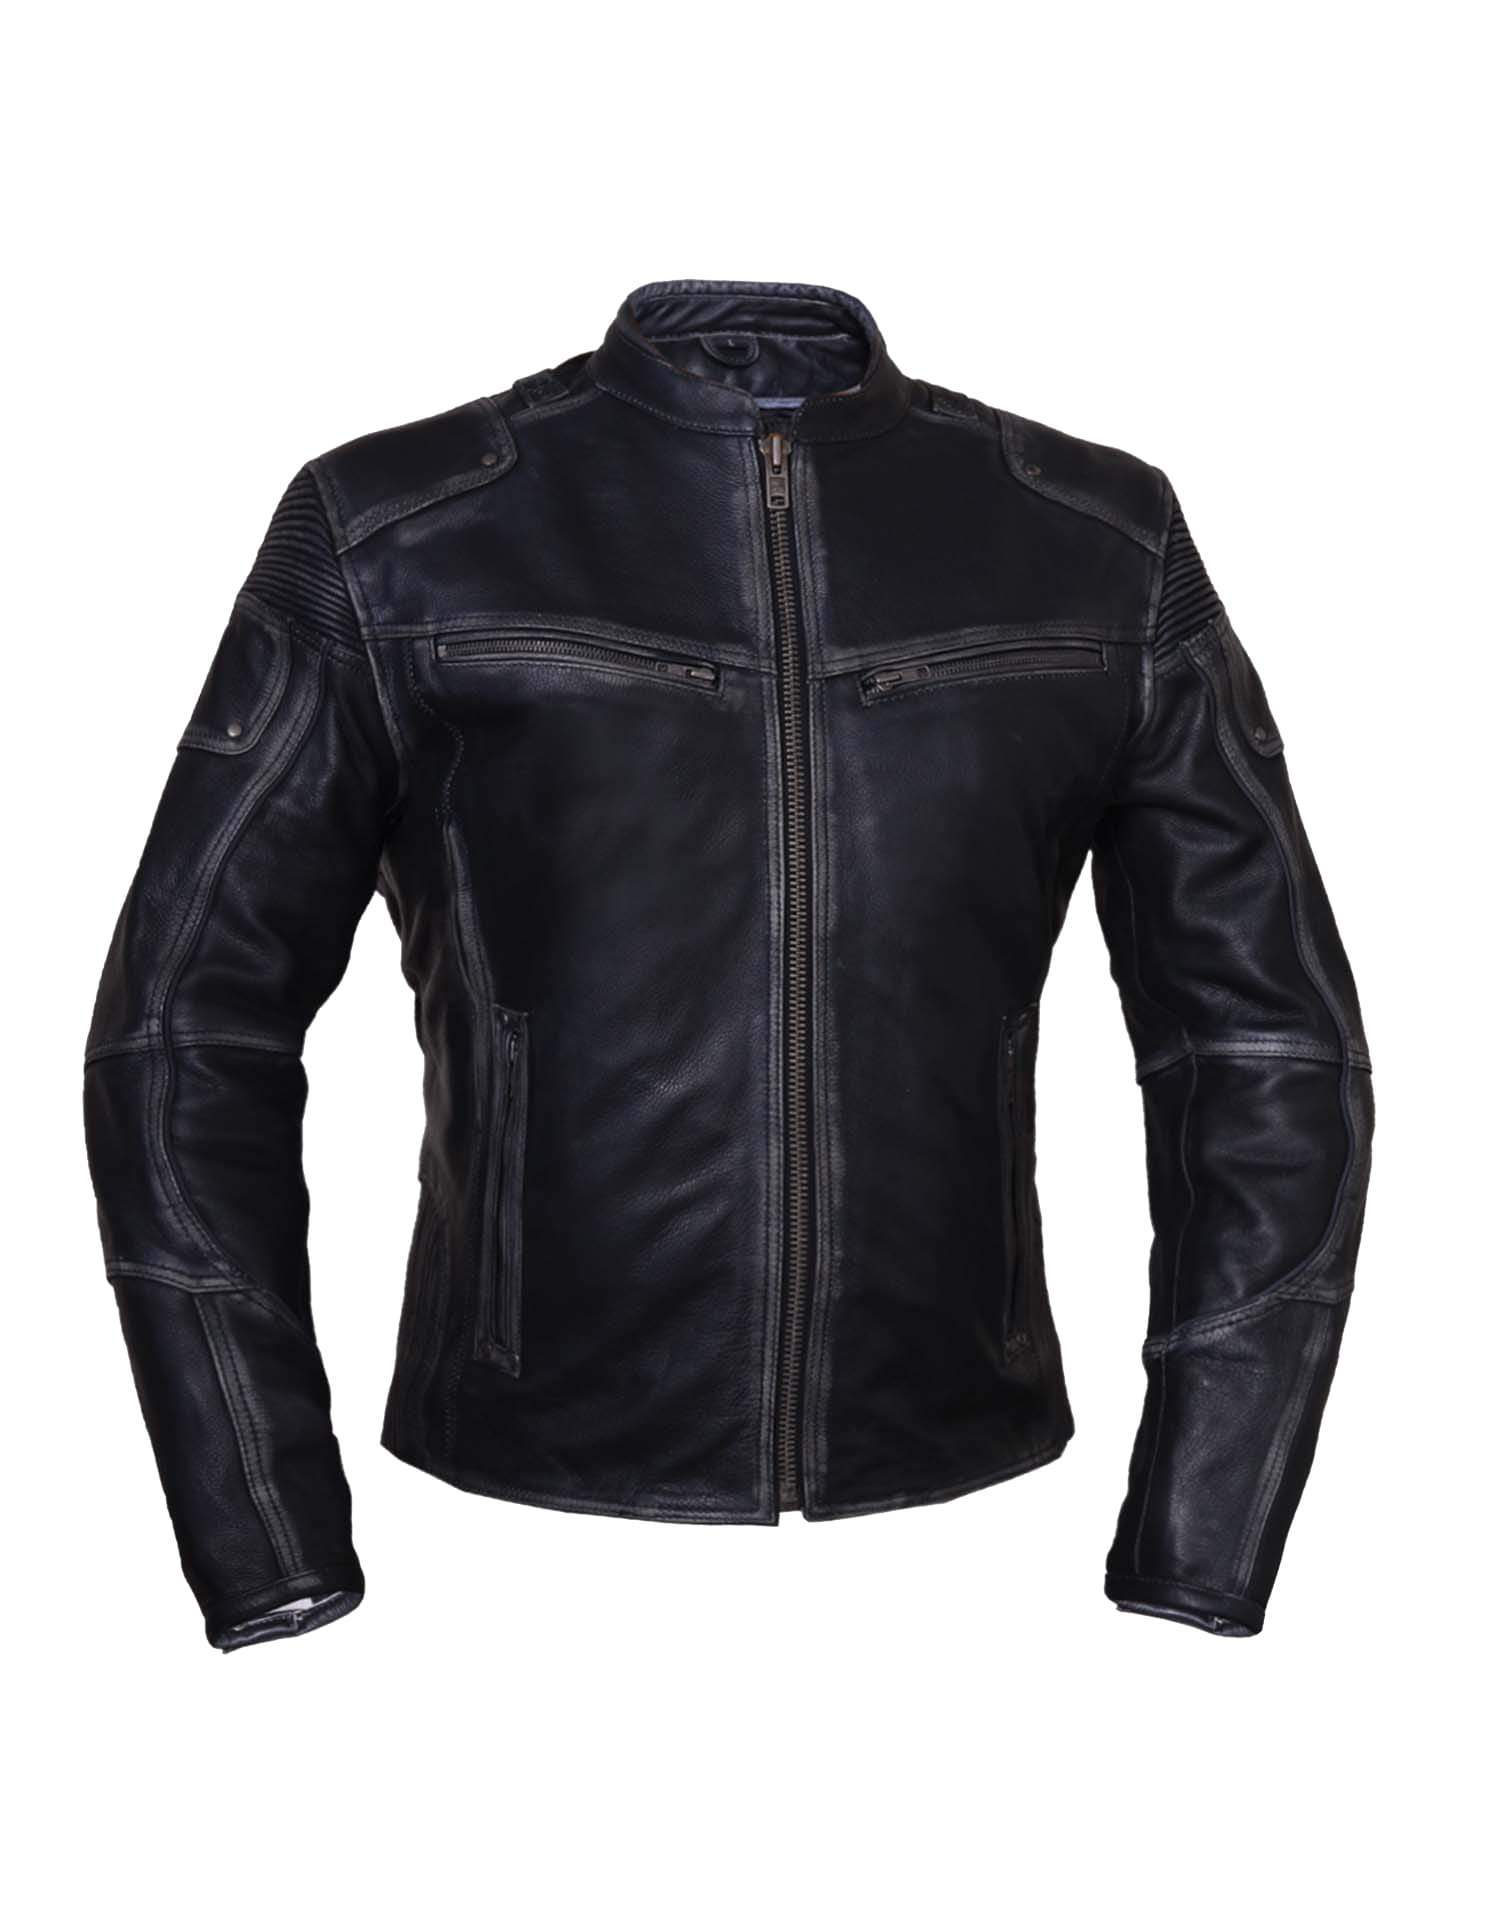 Ladies Black With Dark Gray Trim Durango Leather Jacket with Concealed Carry Pockets - SKU 6833-RF-UN